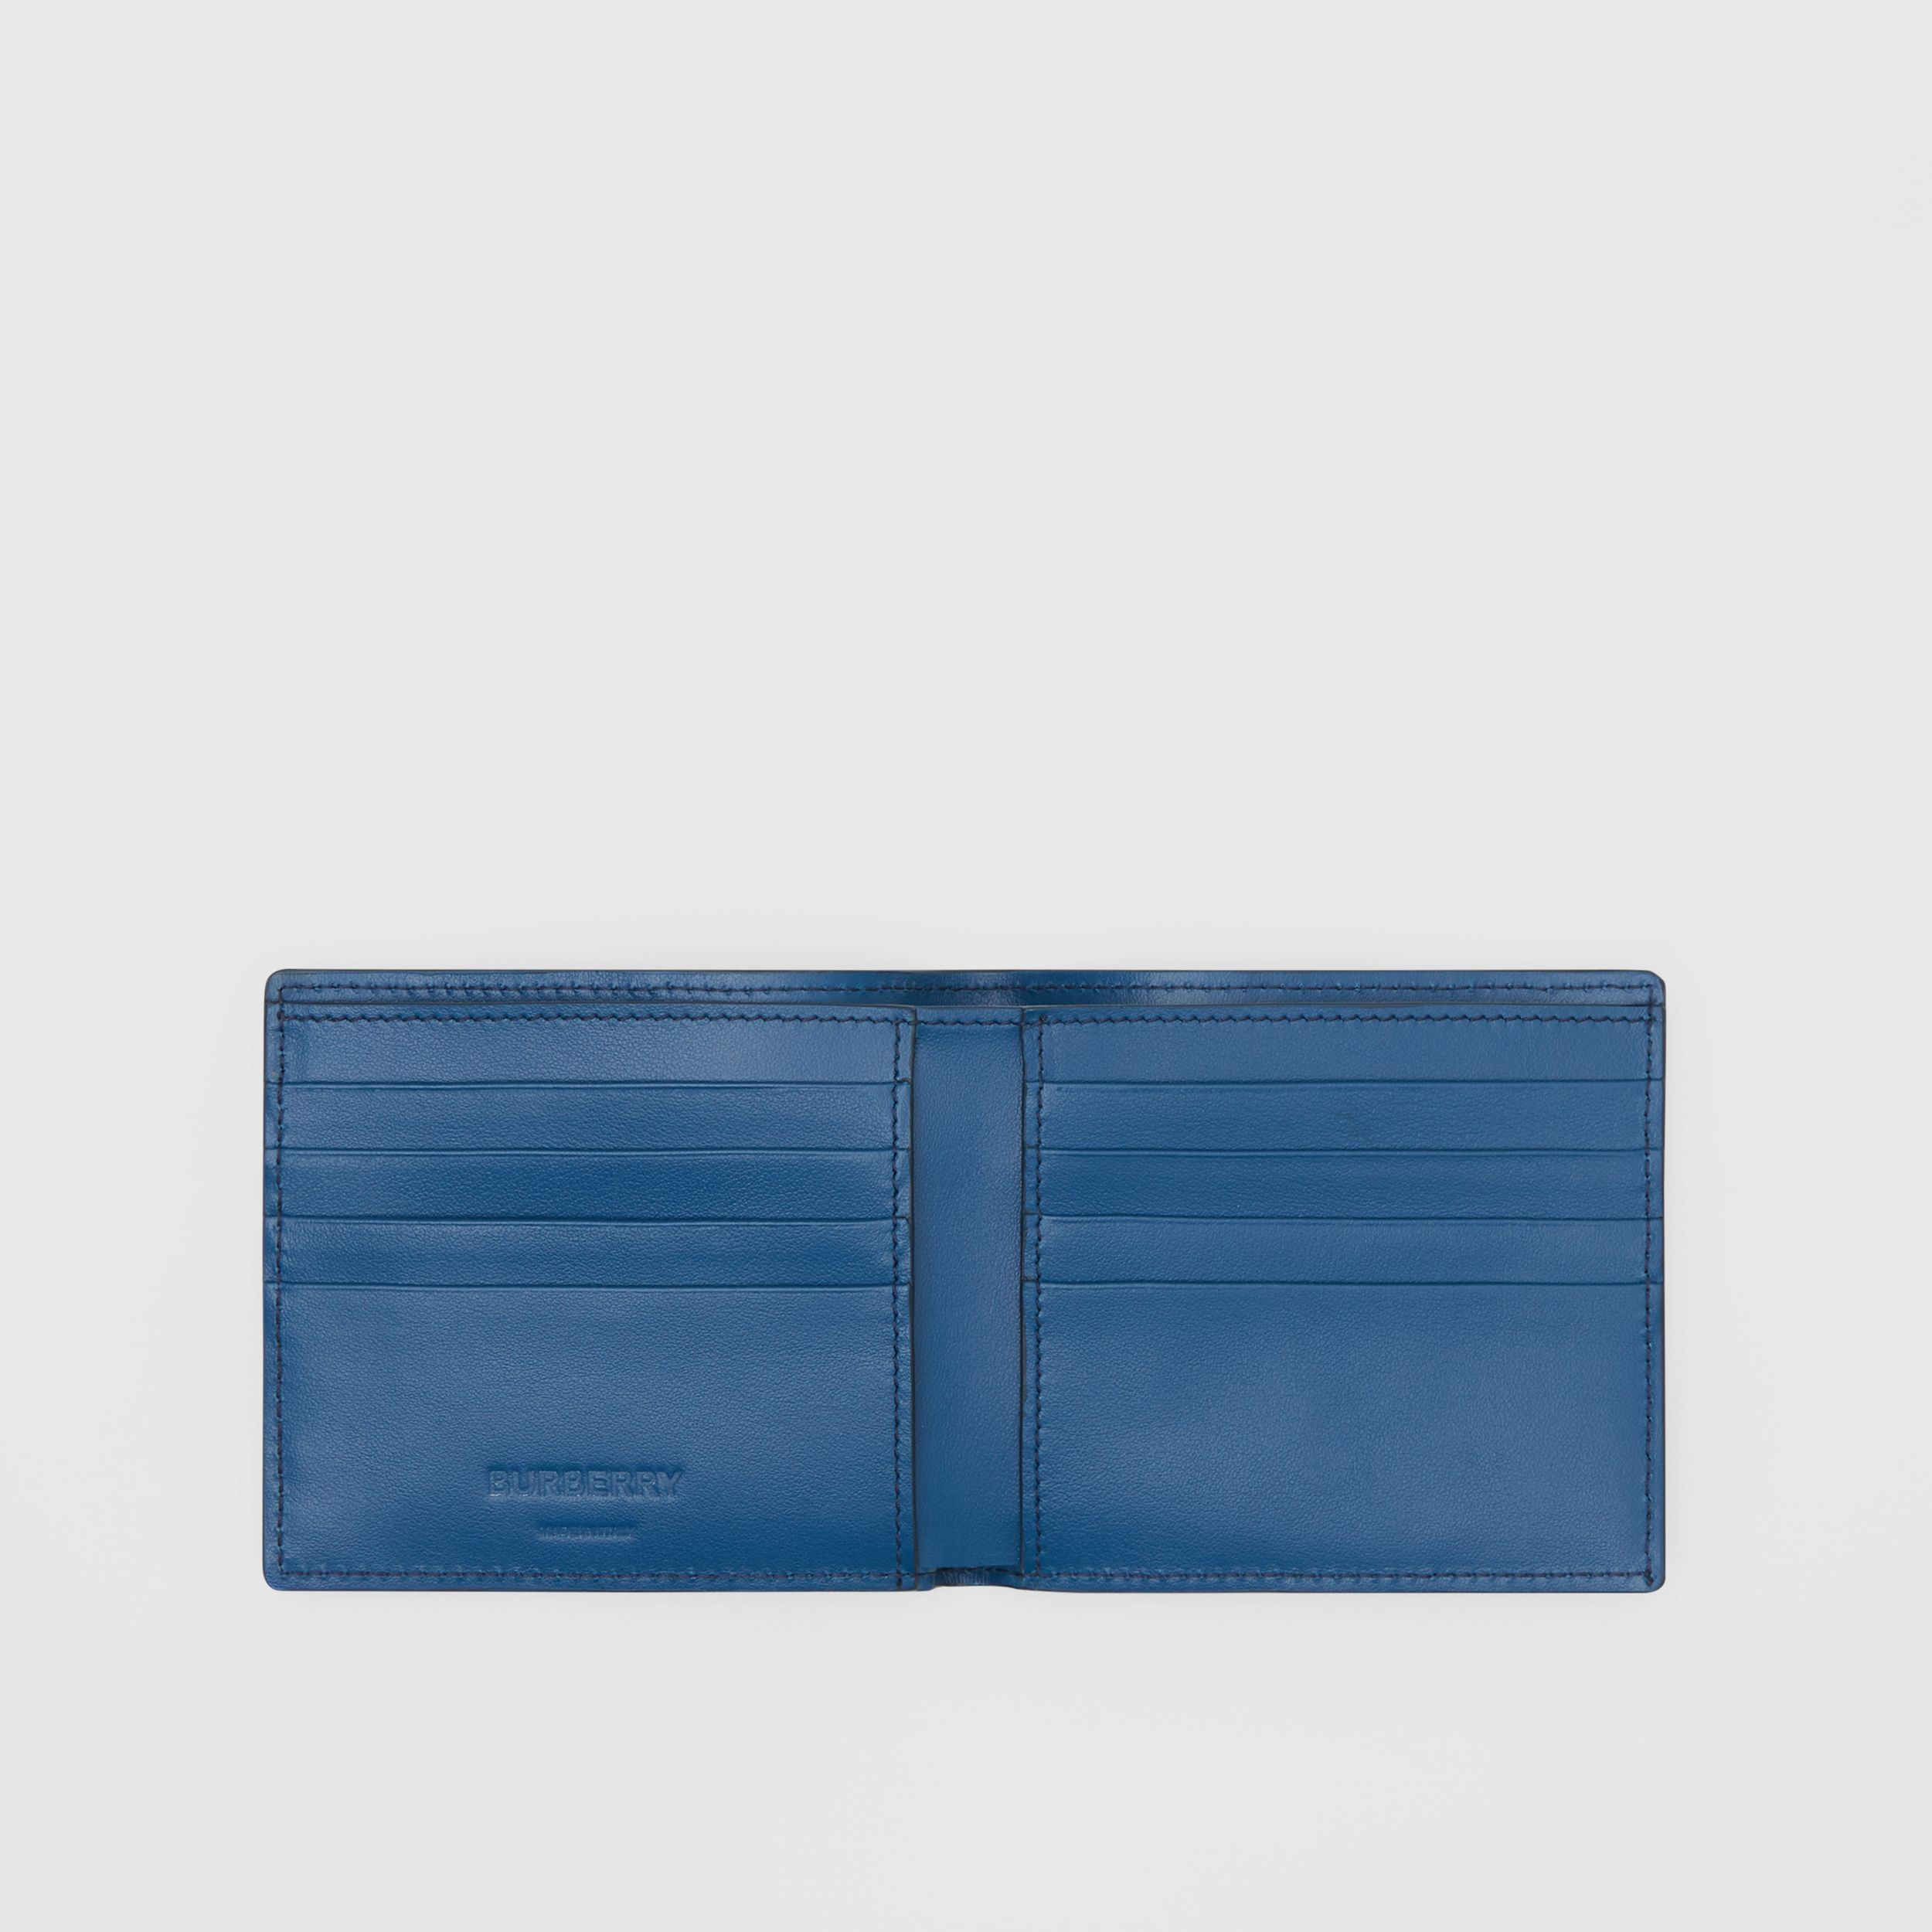 Monogram Leather International Bifold Wallet in Pale Canvas Blue - Men | Burberry - 3